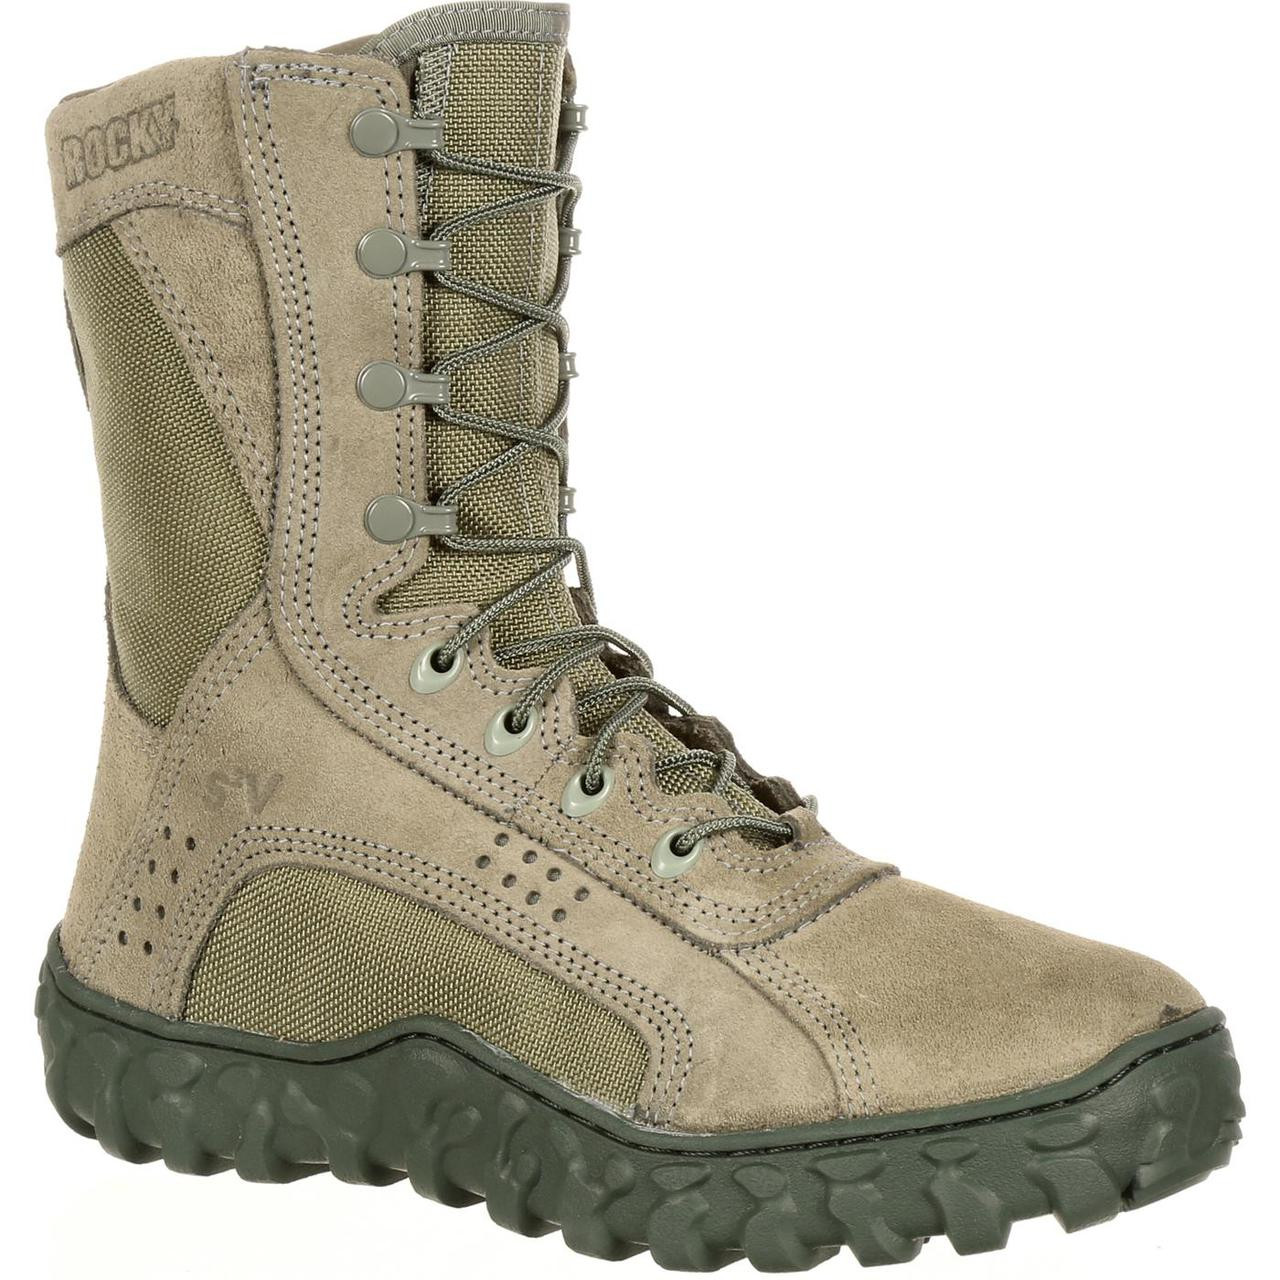 75b18a1fbfb Rocky S2V Tactical Military Boot Sage Green Combat Ready Vented